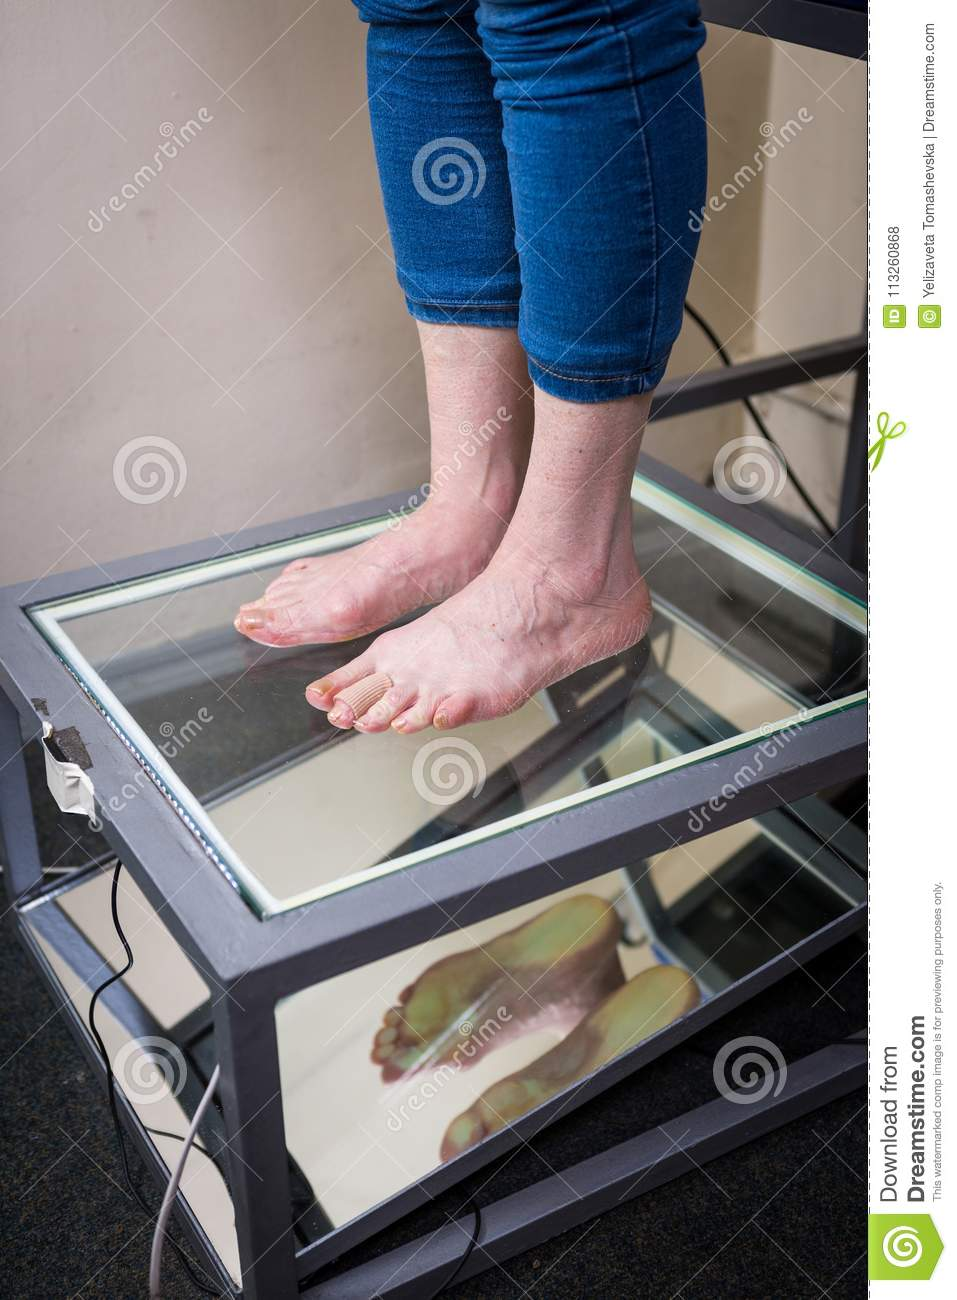 Step Digital Foot Scan, Orthotics Foot Scan for Custom Made Shoe Insoles, Posture and equilibrium analysis. Doctor, patient